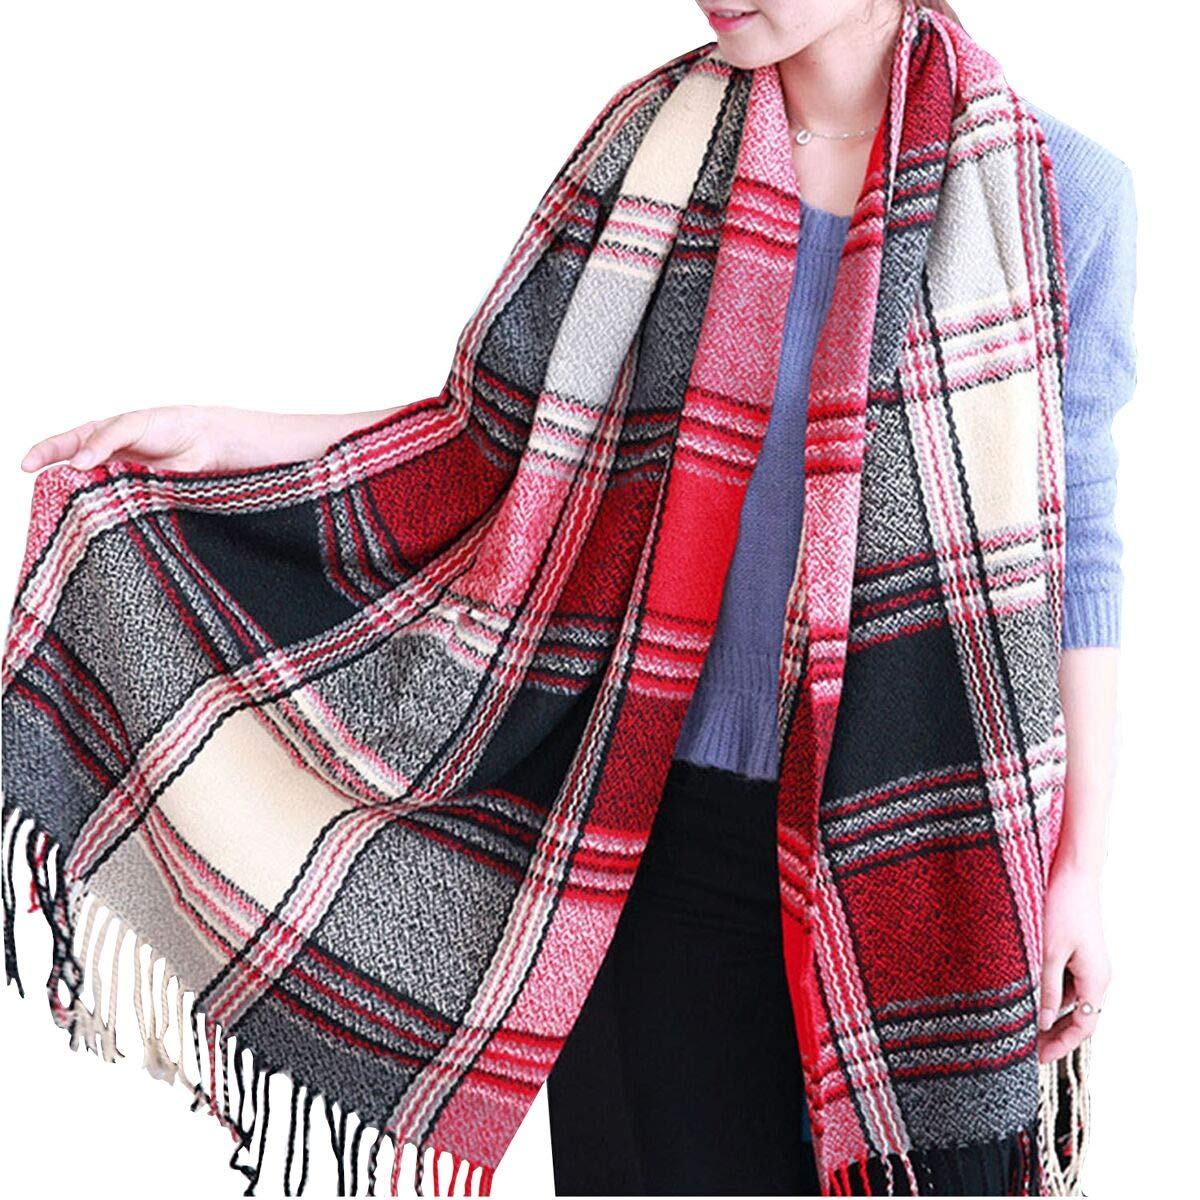 Plaid Scarf - Women Tartan Scarf Long Wool Spinning Tassel Wrap Shawl Classic Style Soft and Warm in Autumn and Winner 604270059296